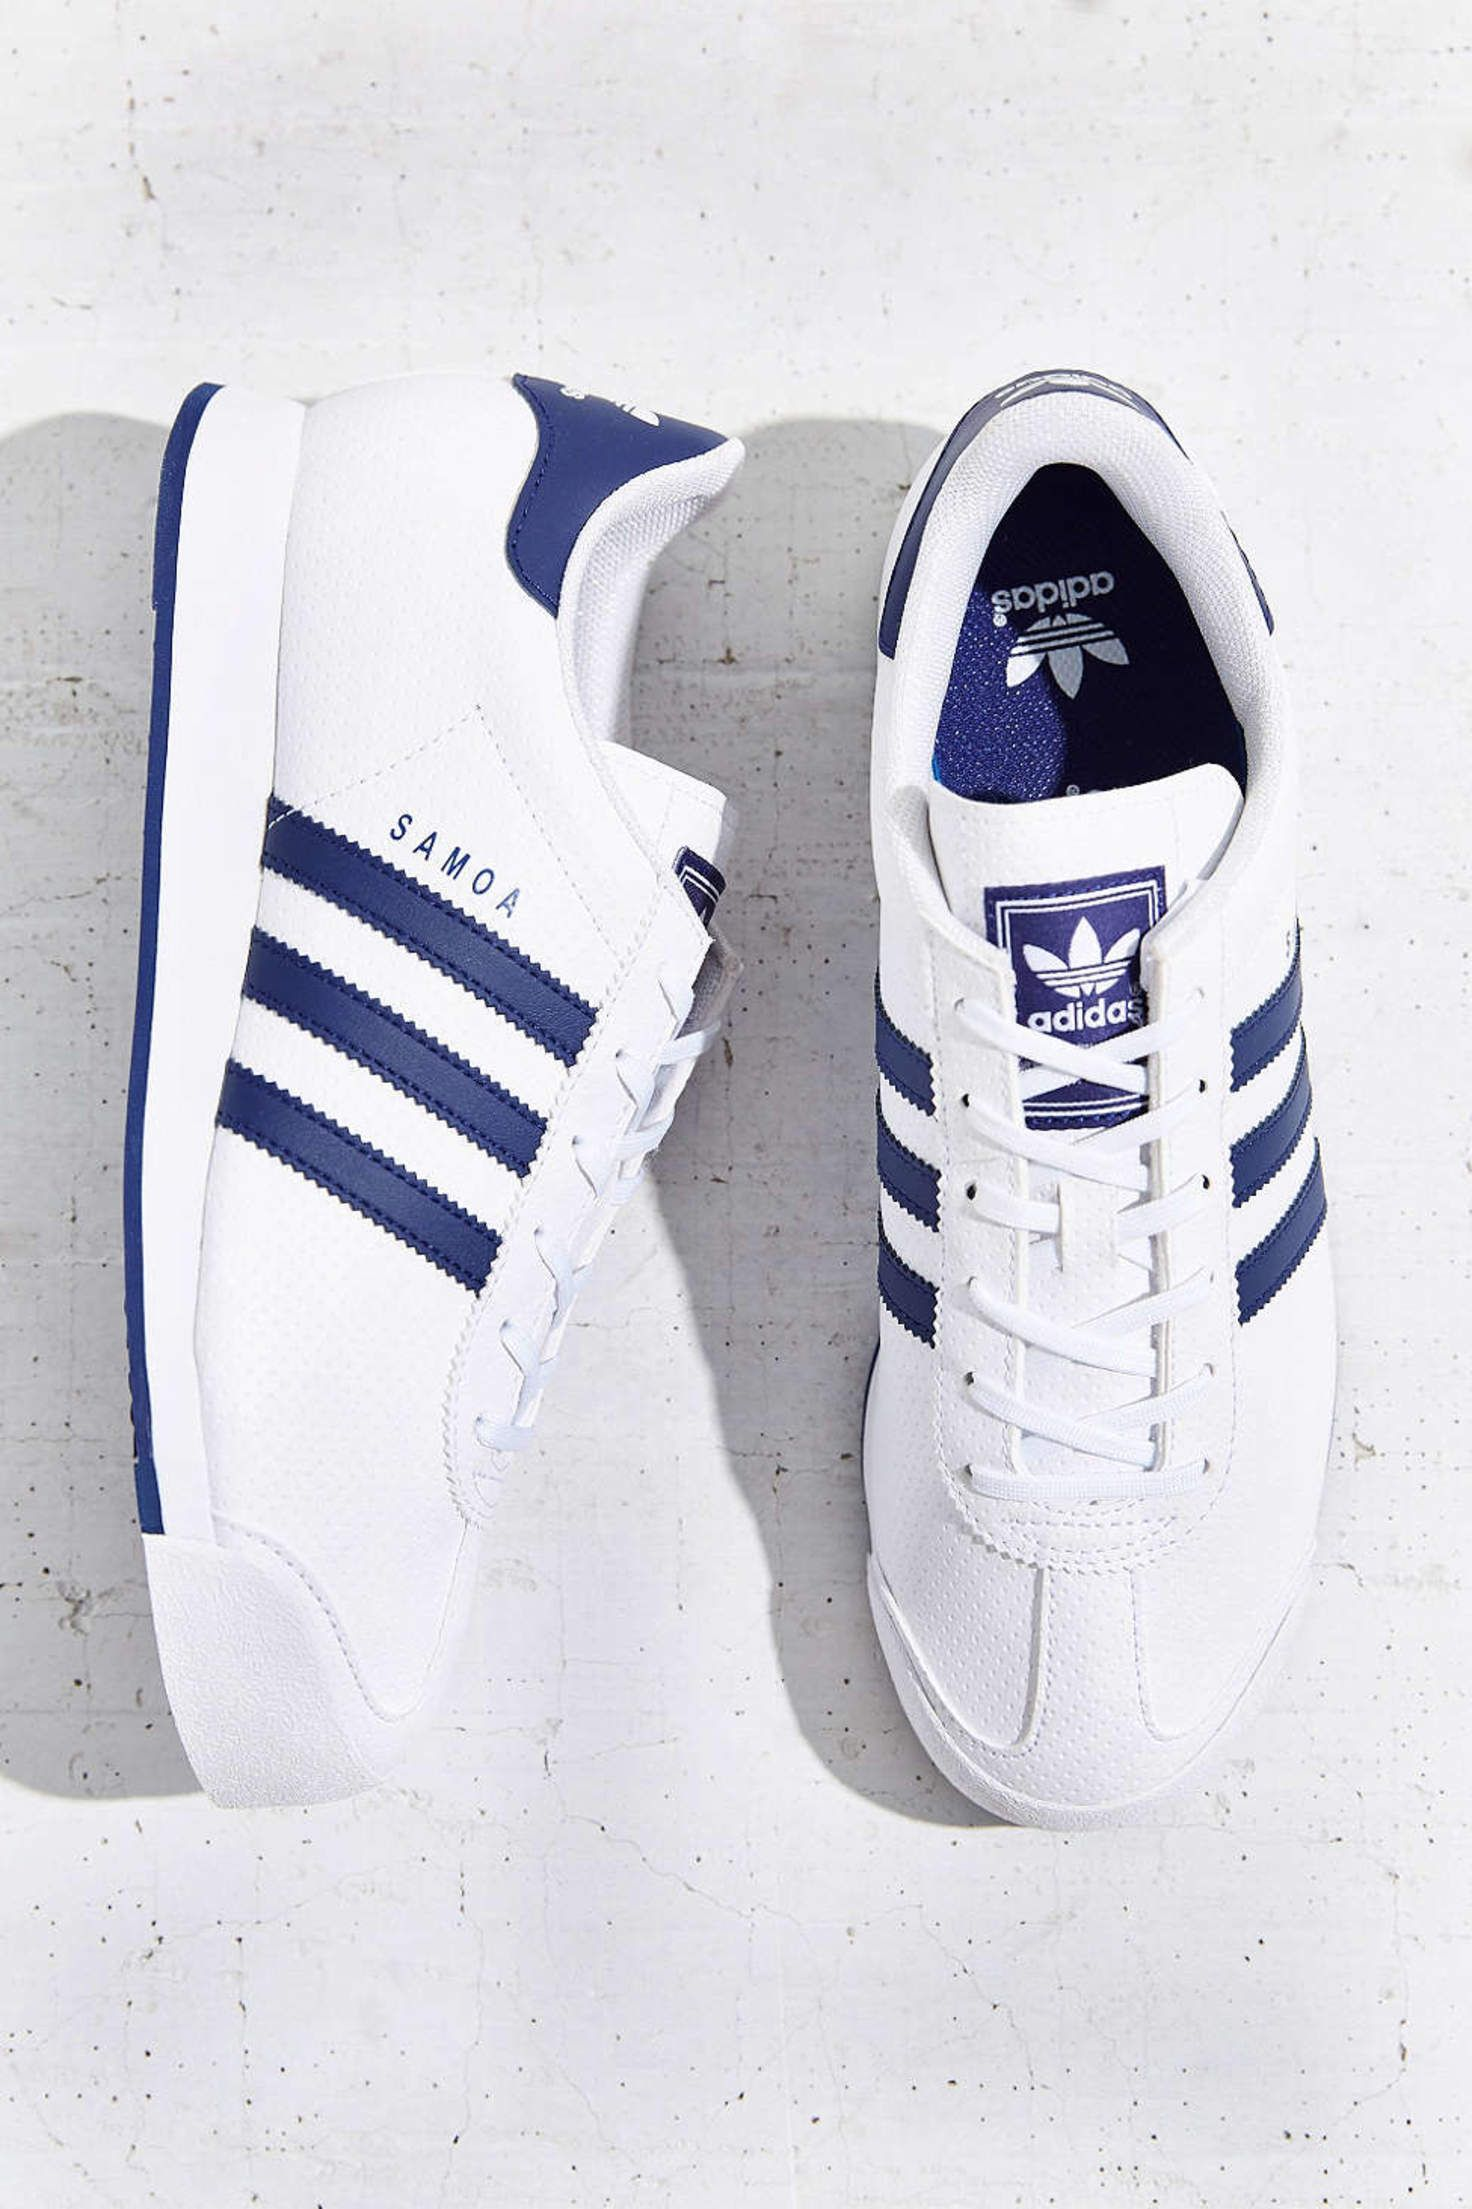 buy popular c5e2e 46b38 adidas Originals Samoa Blue Stripe Sneaker - Urban Outfitters